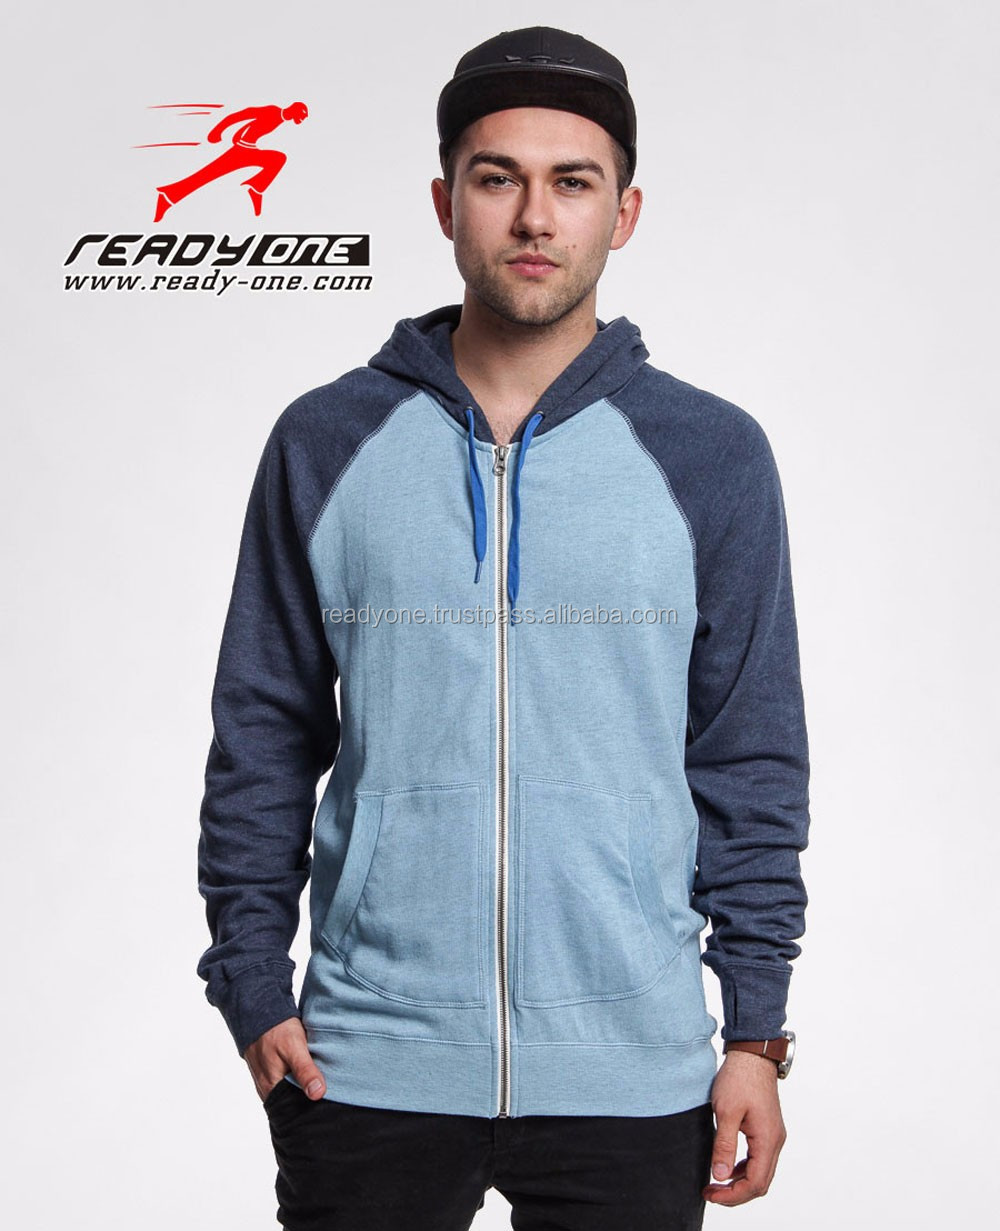 Men's custom design zipper hoody/hoodie/ jackets/sweatshirts